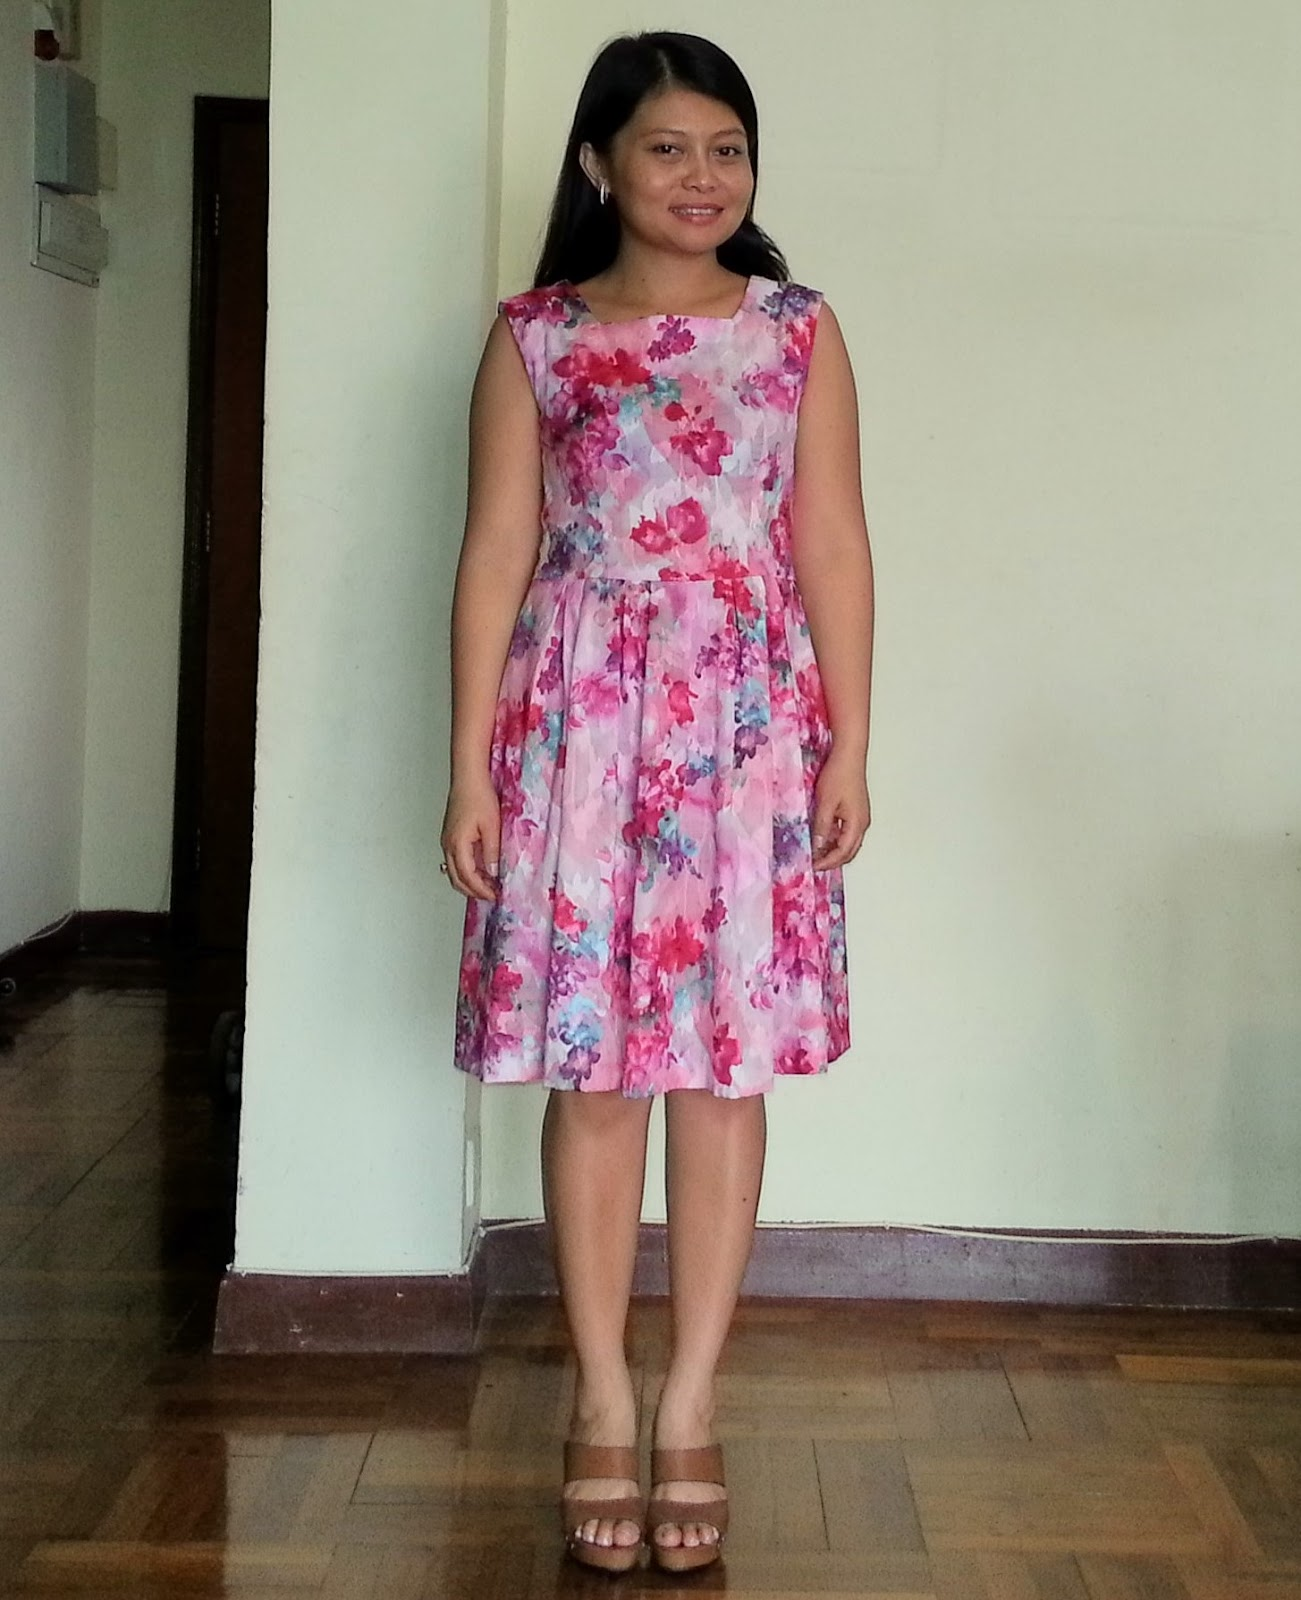 http://velvetribbonsew.blogspot.com/2013/03/floral-dress_19.html